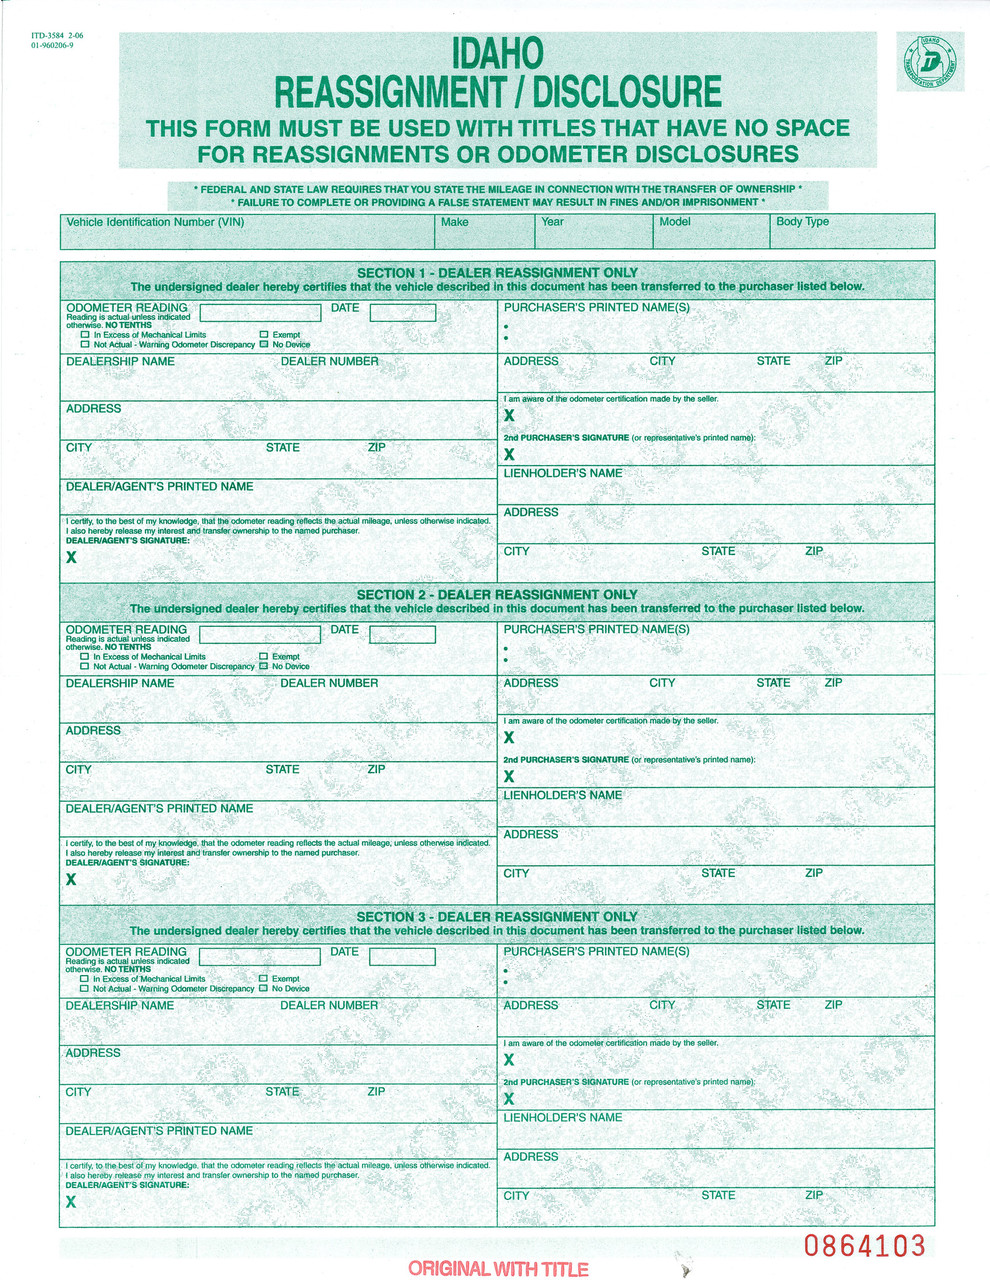 idaho title reassignment   disclosure form